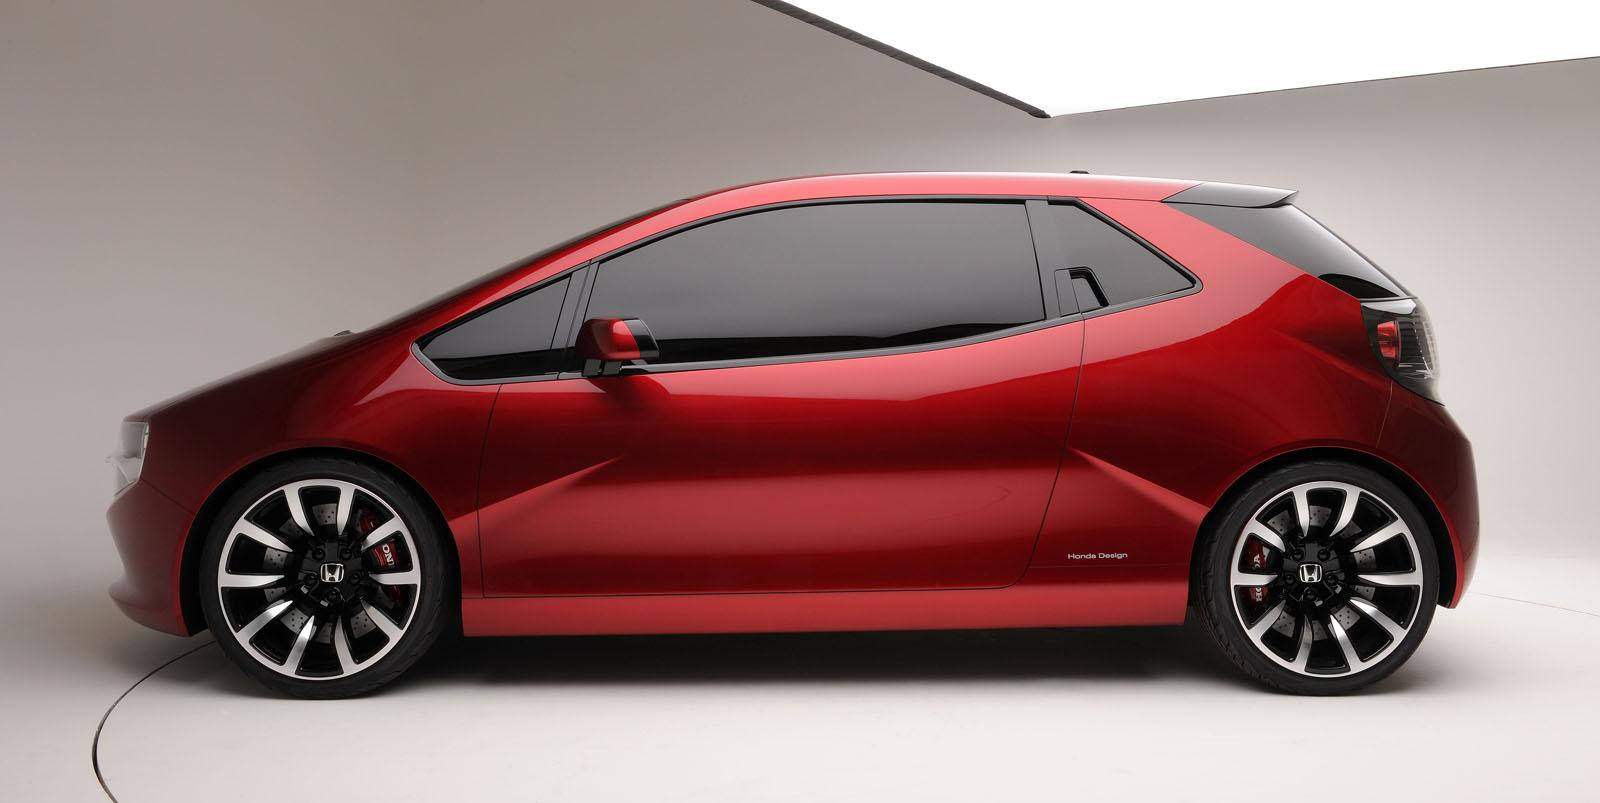 Car Dealers Montreal >> Honda surprises with Gear concept in Montreal - Autoblog